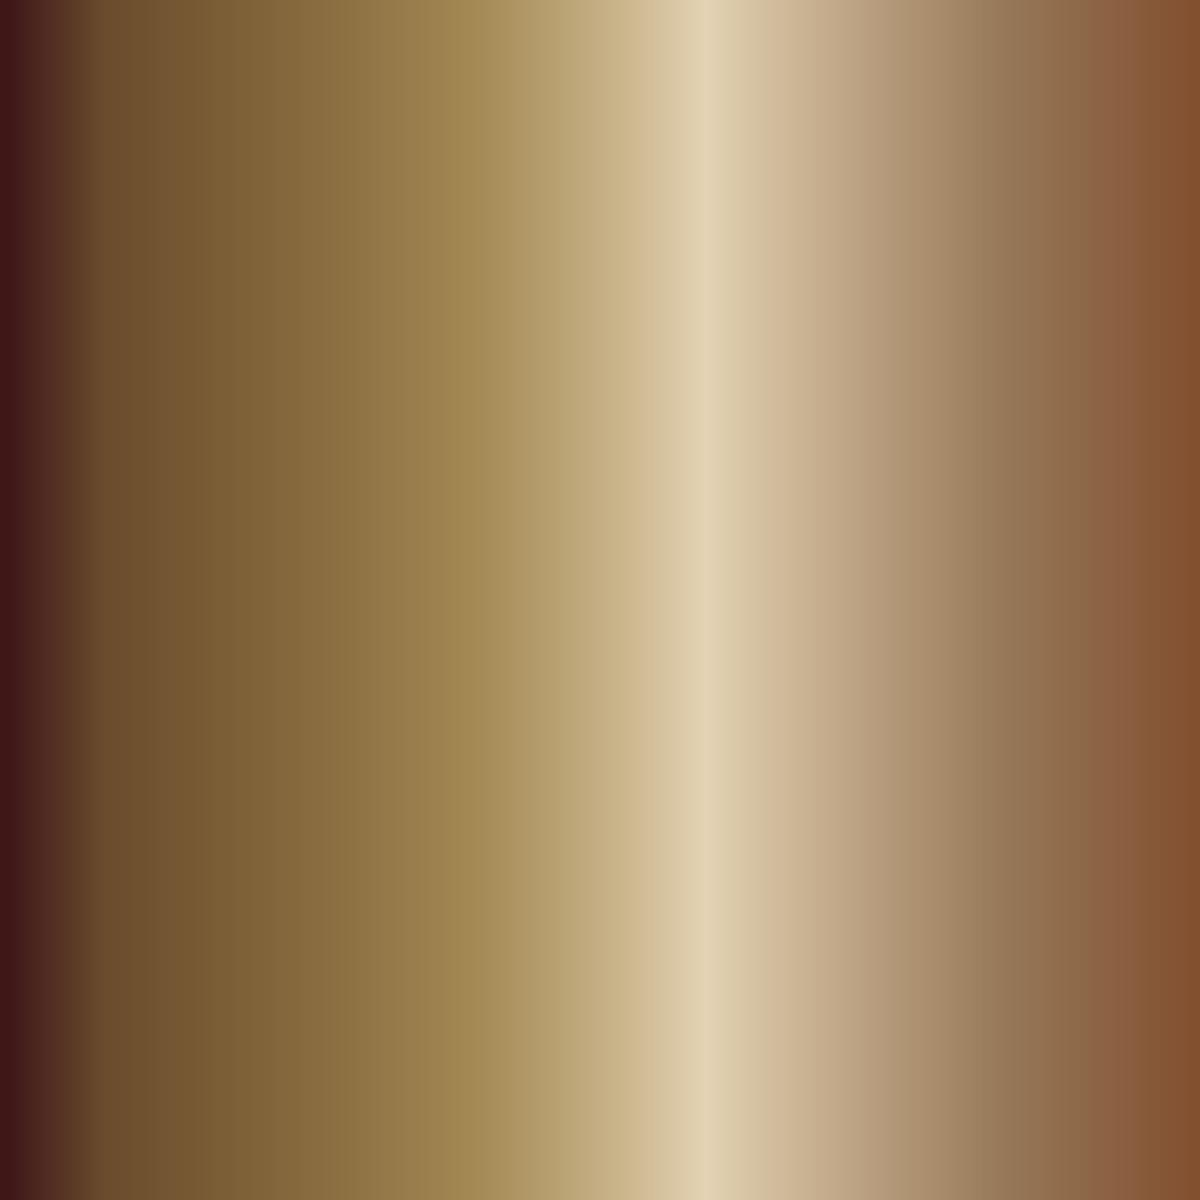 FolkArt ® Brushed Metal™ Acrylic Paint - Bronze, 4 oz.